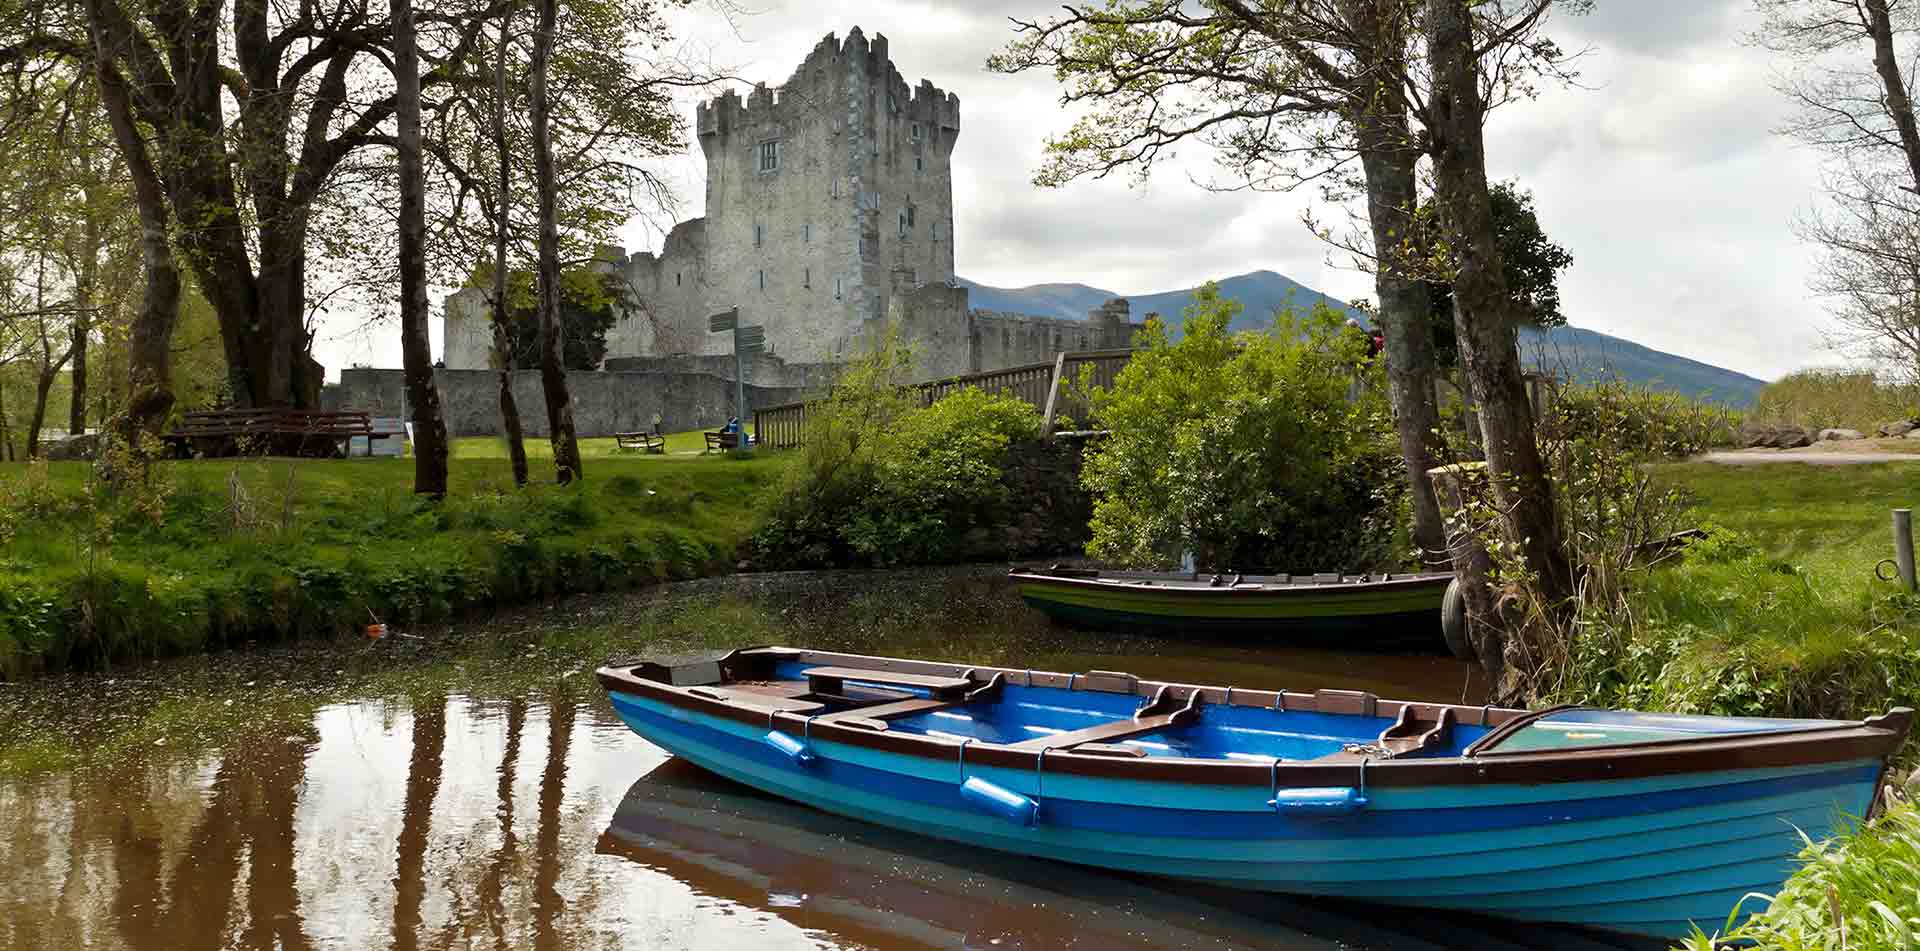 Ireland Europe Water Stream Hotel Exterior Castles Outside Greenery Lush Scenic - luxury vacation destinations